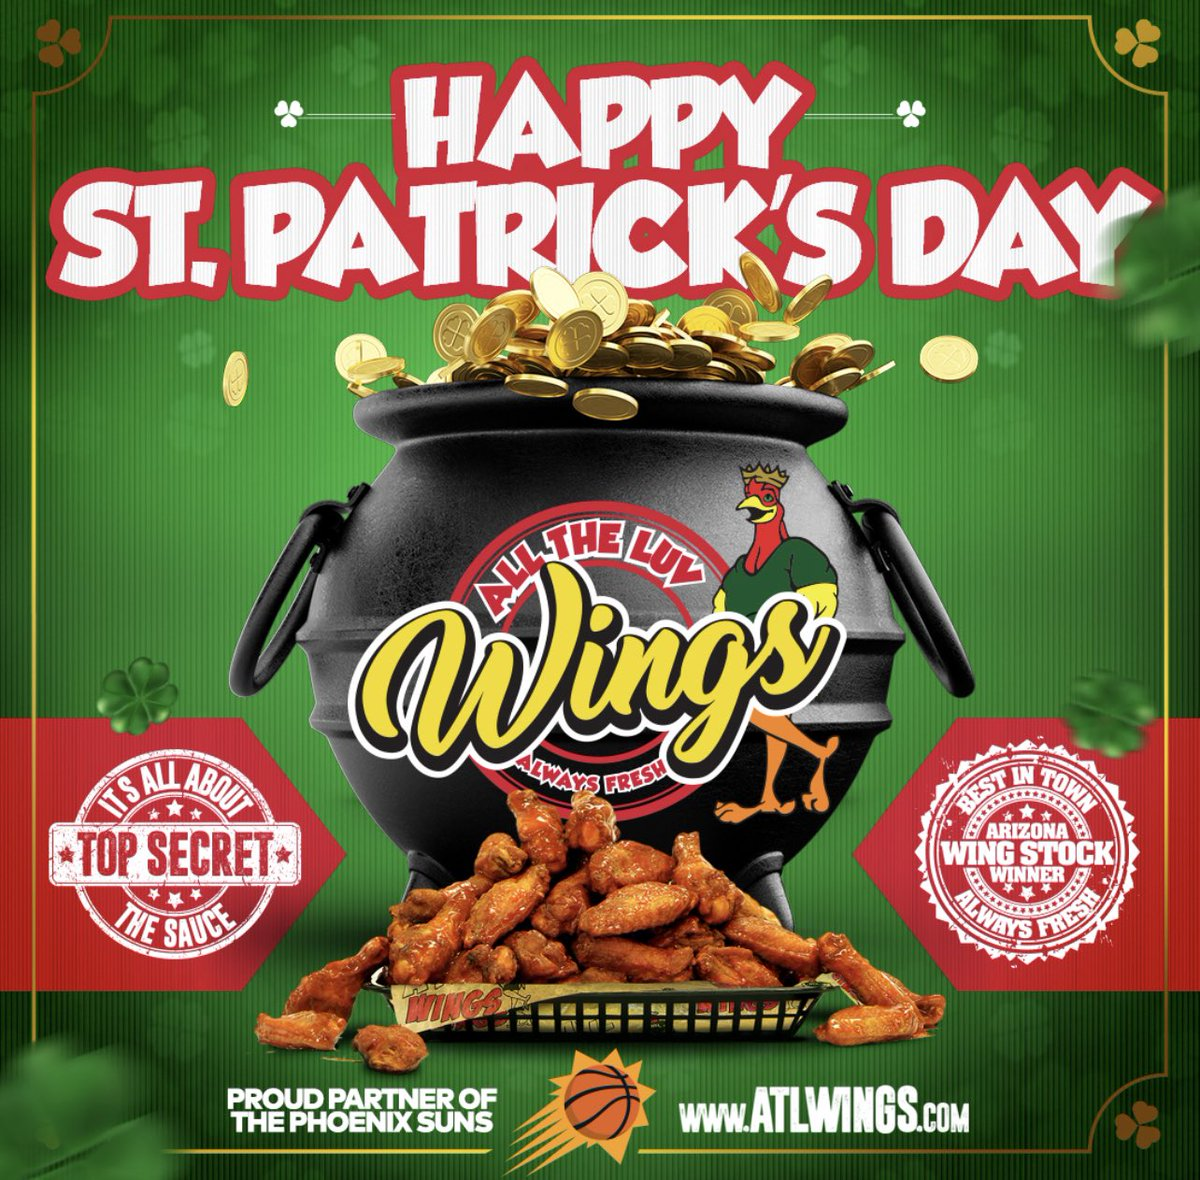 Wings goes well with your green activities today! All The Luv https://t.co/KEKPUS8ktK